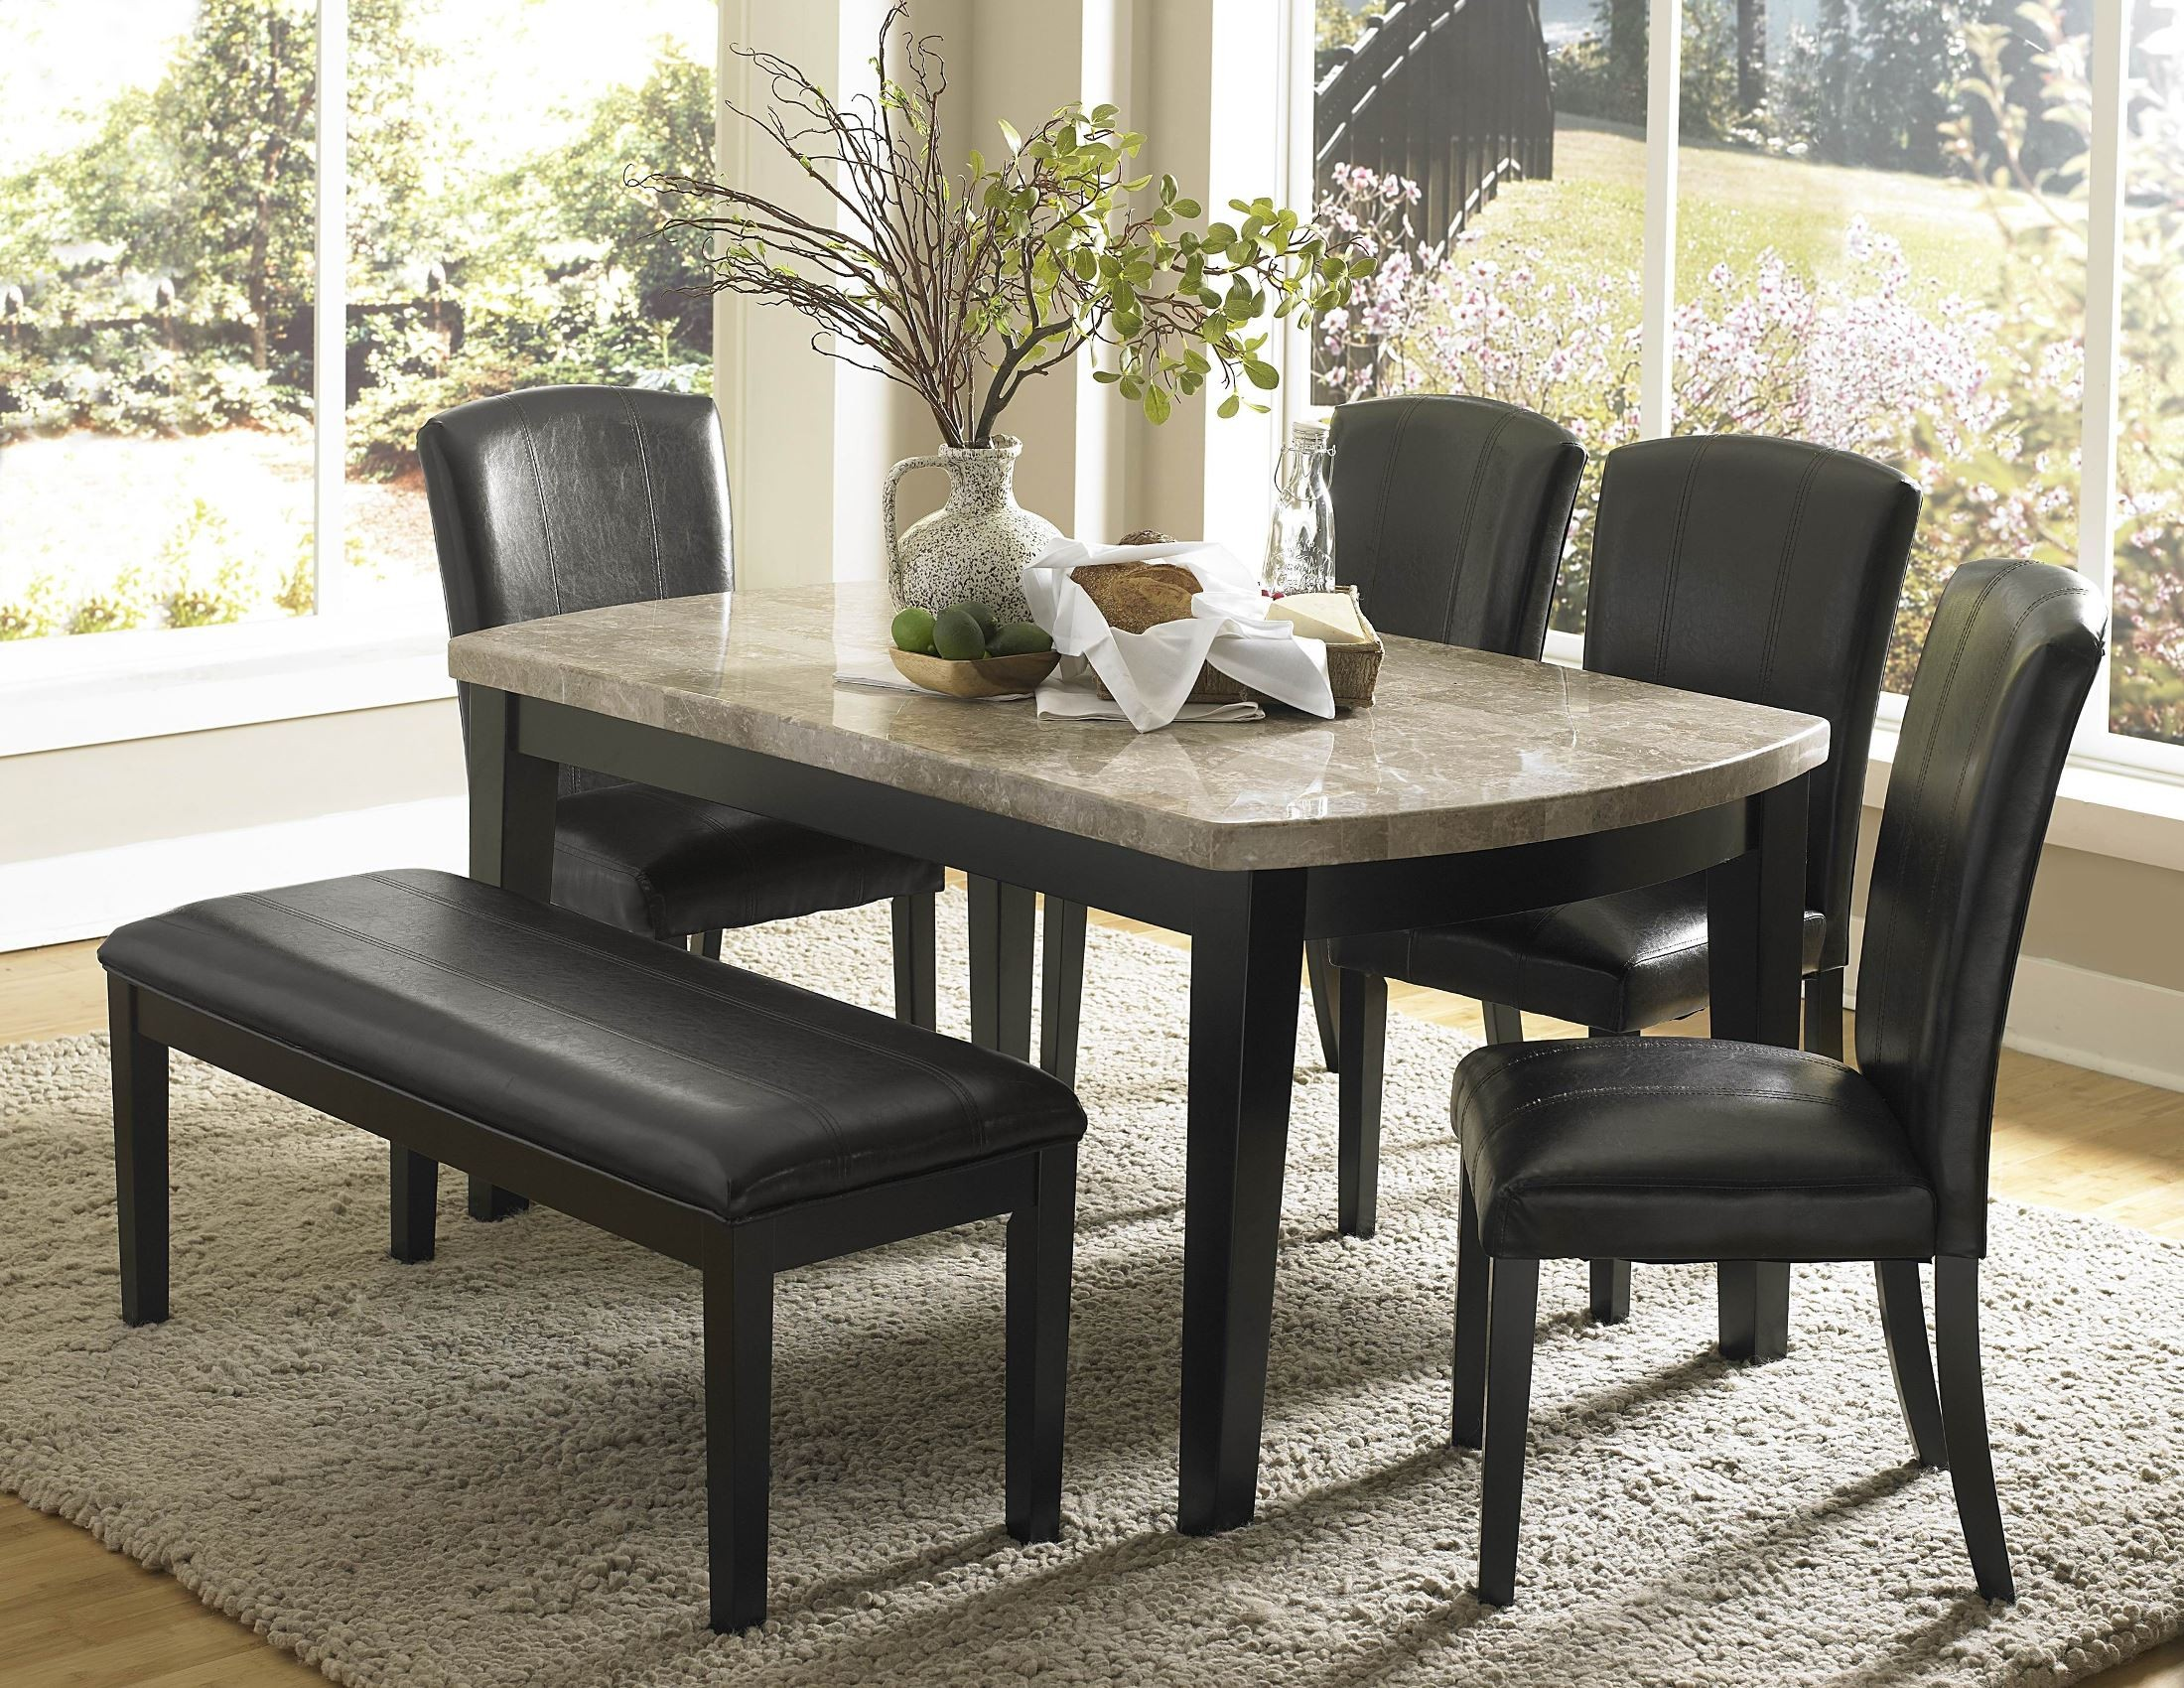 Cristo Marble Top Dining Room Set From Homelegance (5070